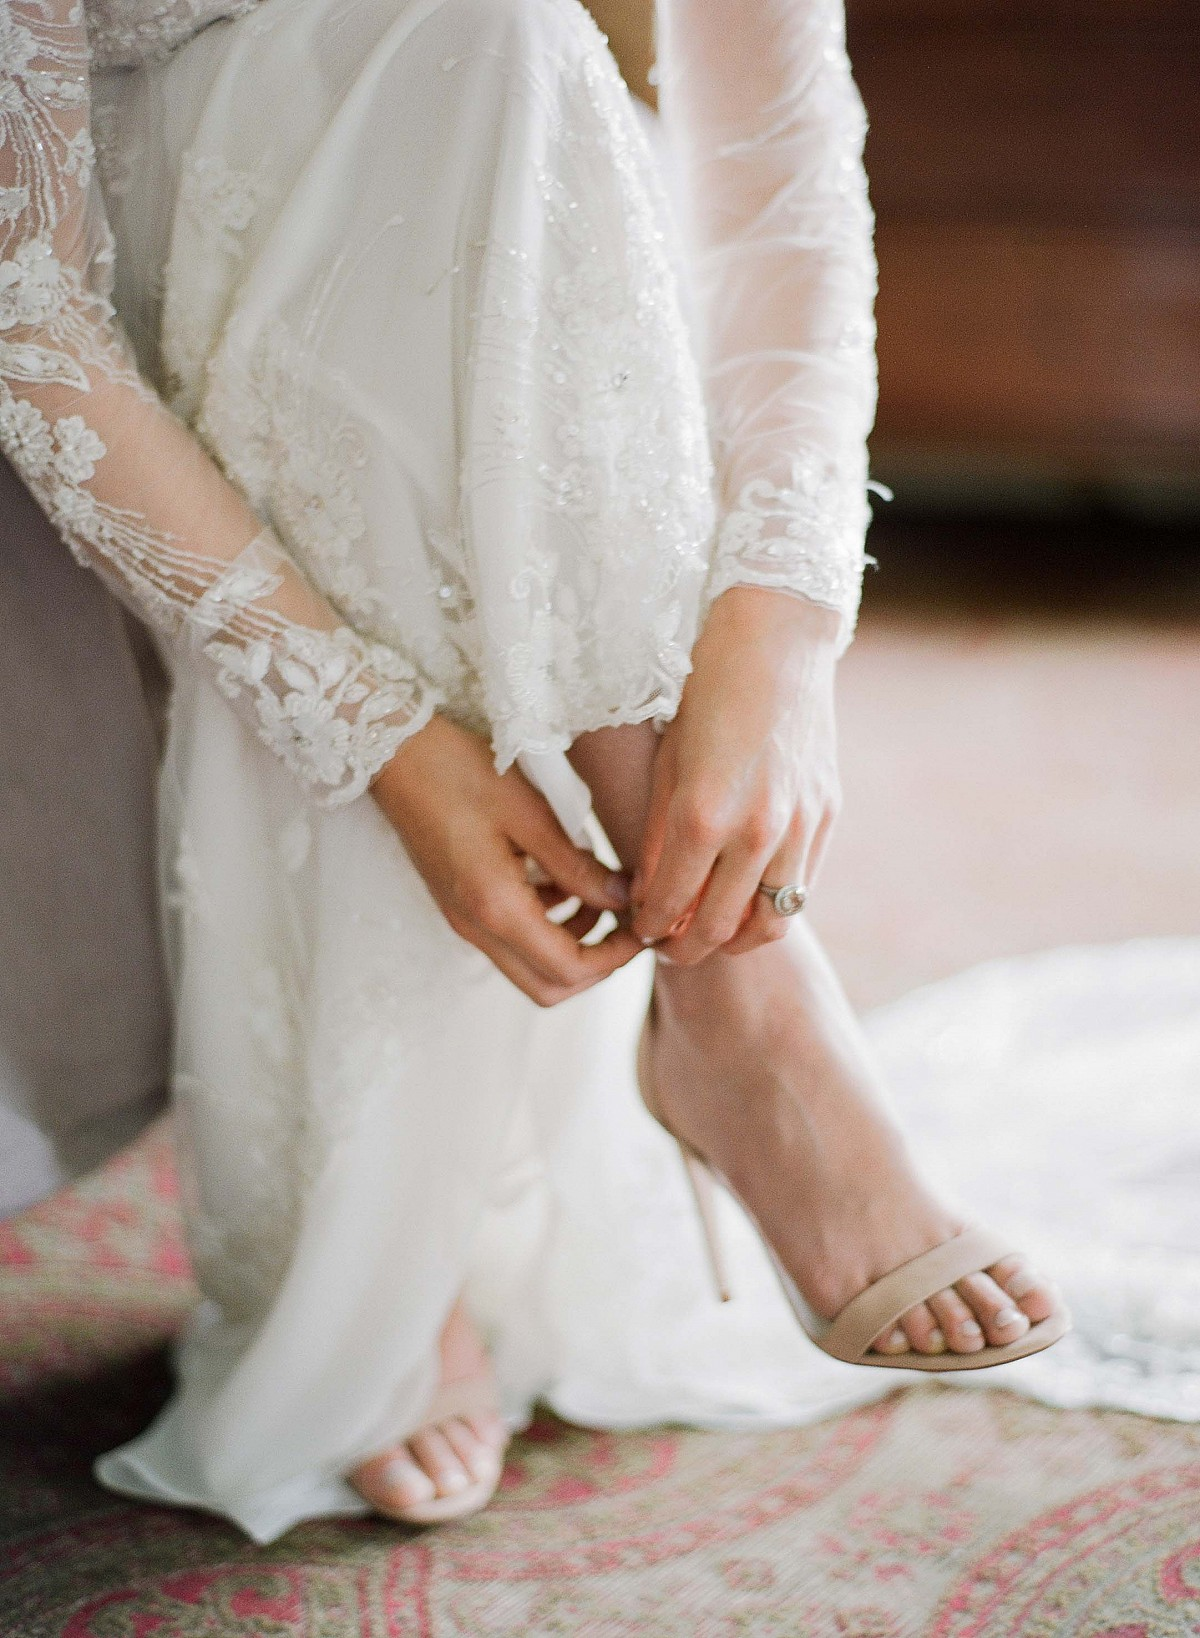 Intentionally finding Moments of Calm on your Wedding Day